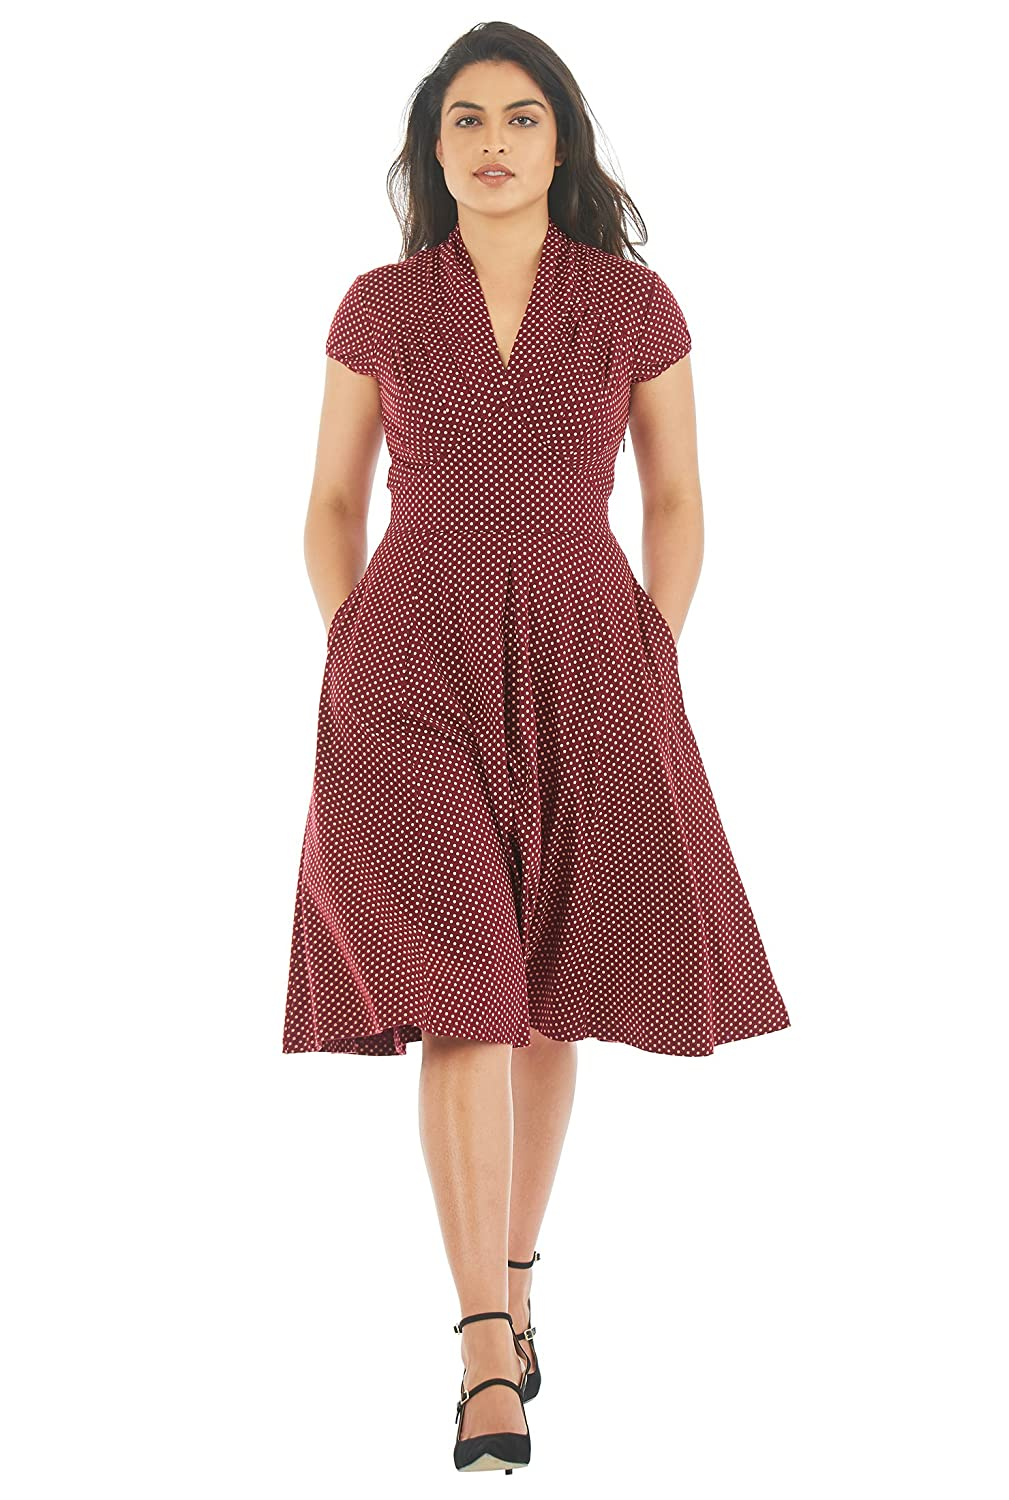 Vintage Polka Dot Dresses – Ditsy 50s Prints eShakti Womens Feminine pleated polka dot cotton knit dress $60.95 AT vintagedancer.com